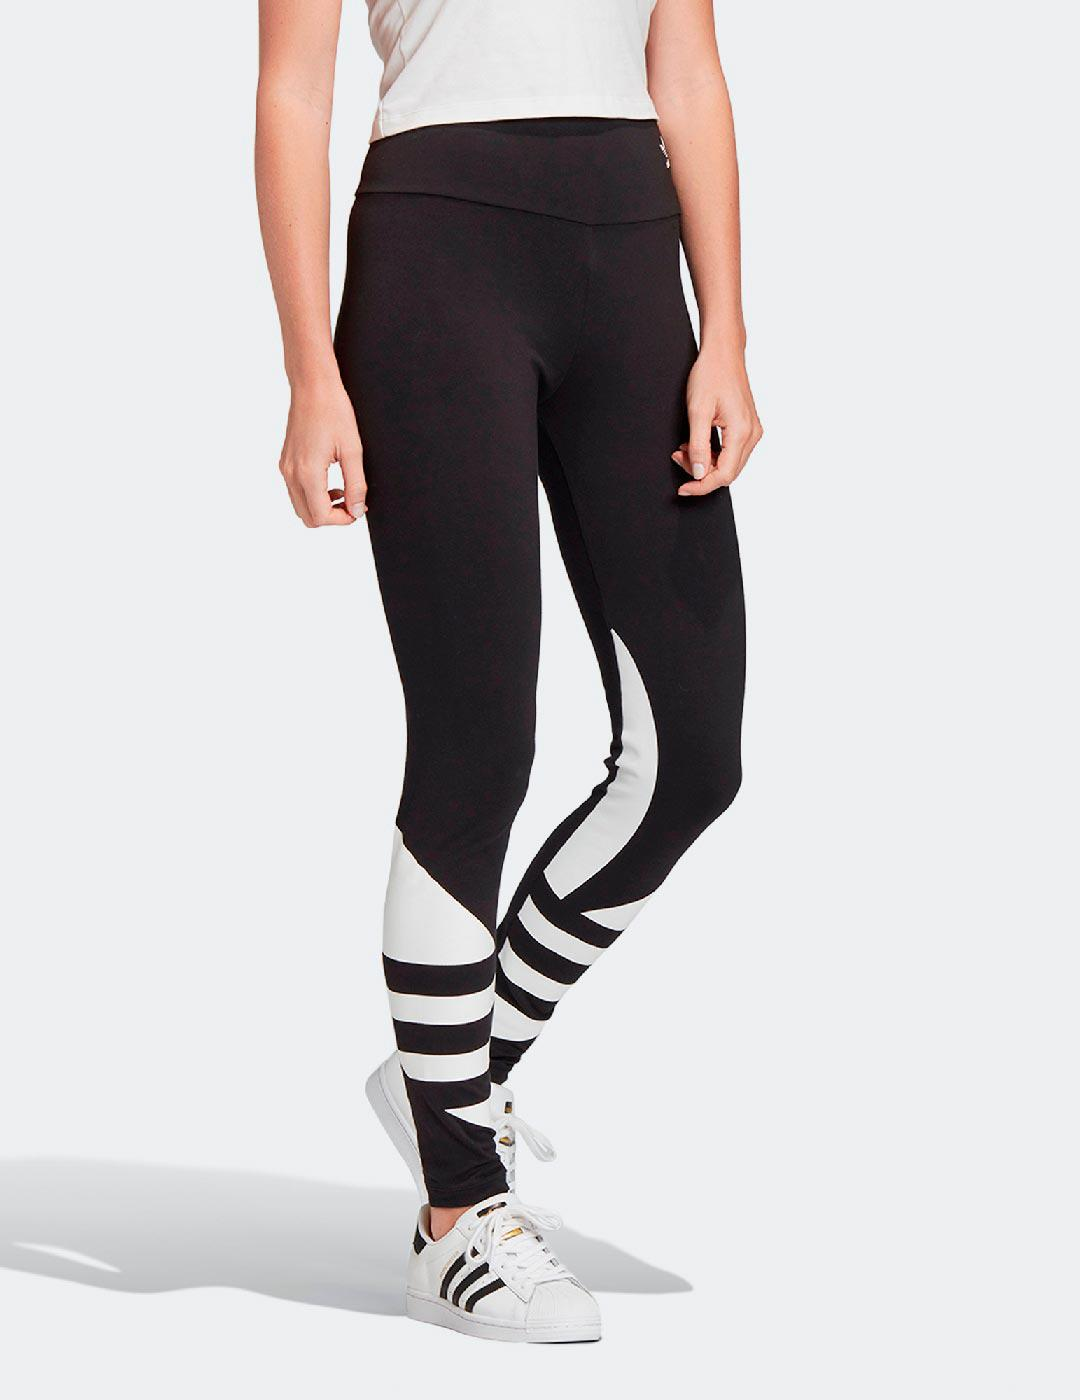 Leggins LRG LOGO TIGHT - Negro